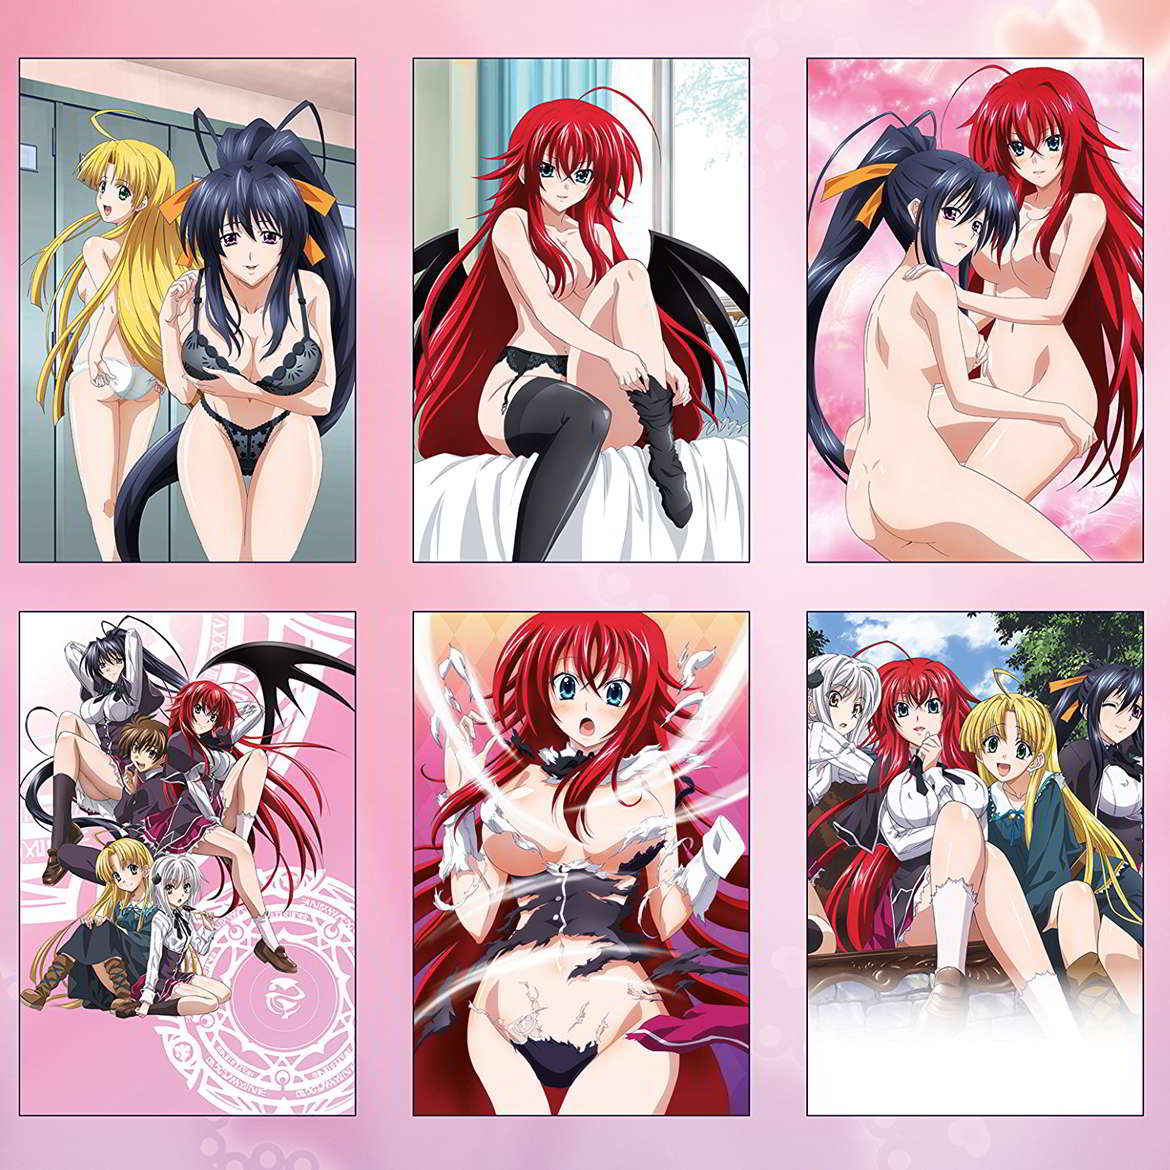 © Ichiei Ishibumi · Miyama-Zero / Fujimi Shobo / HIGH SCHOOL DxD Production Committee / VIZ Media Switzerland SA